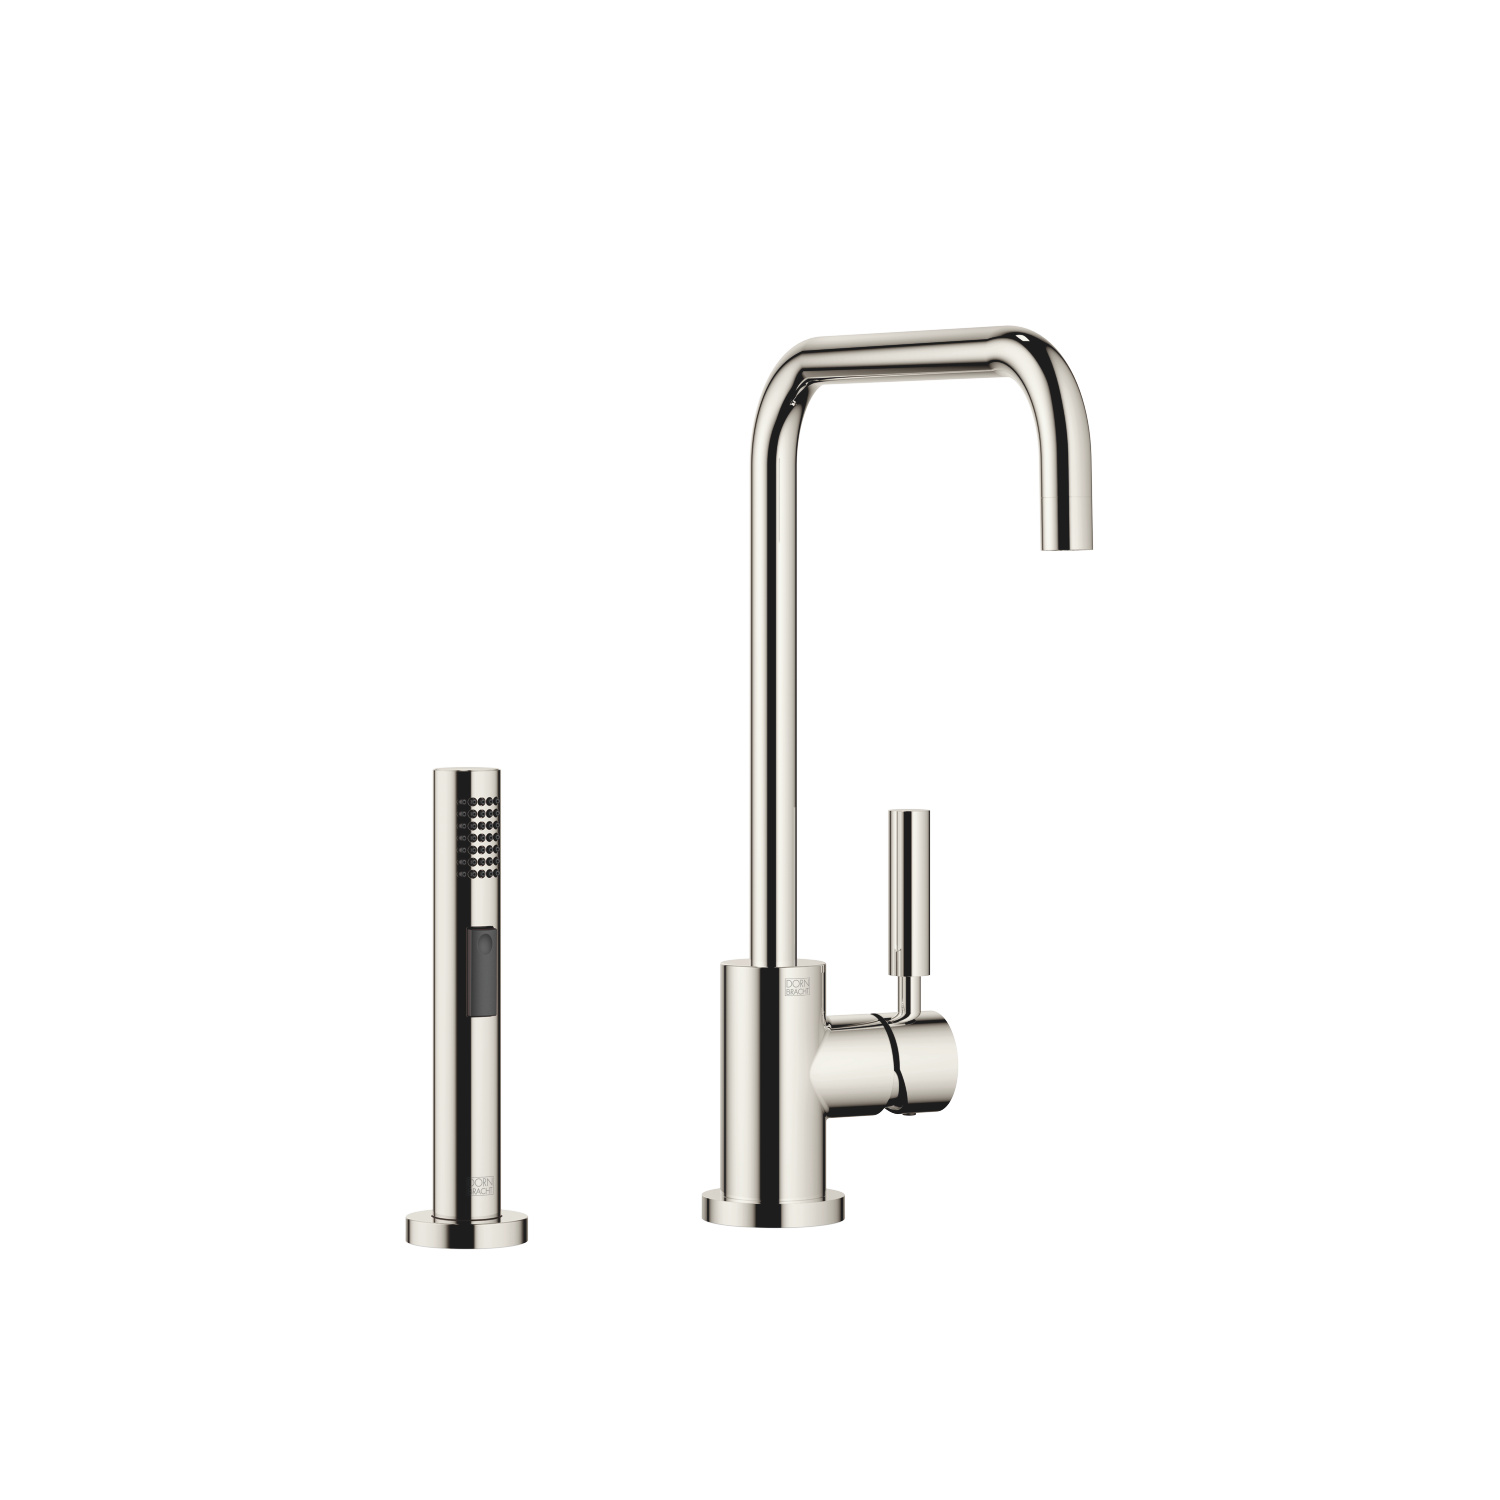 Single-lever mixer with rinsing spray set - platinum